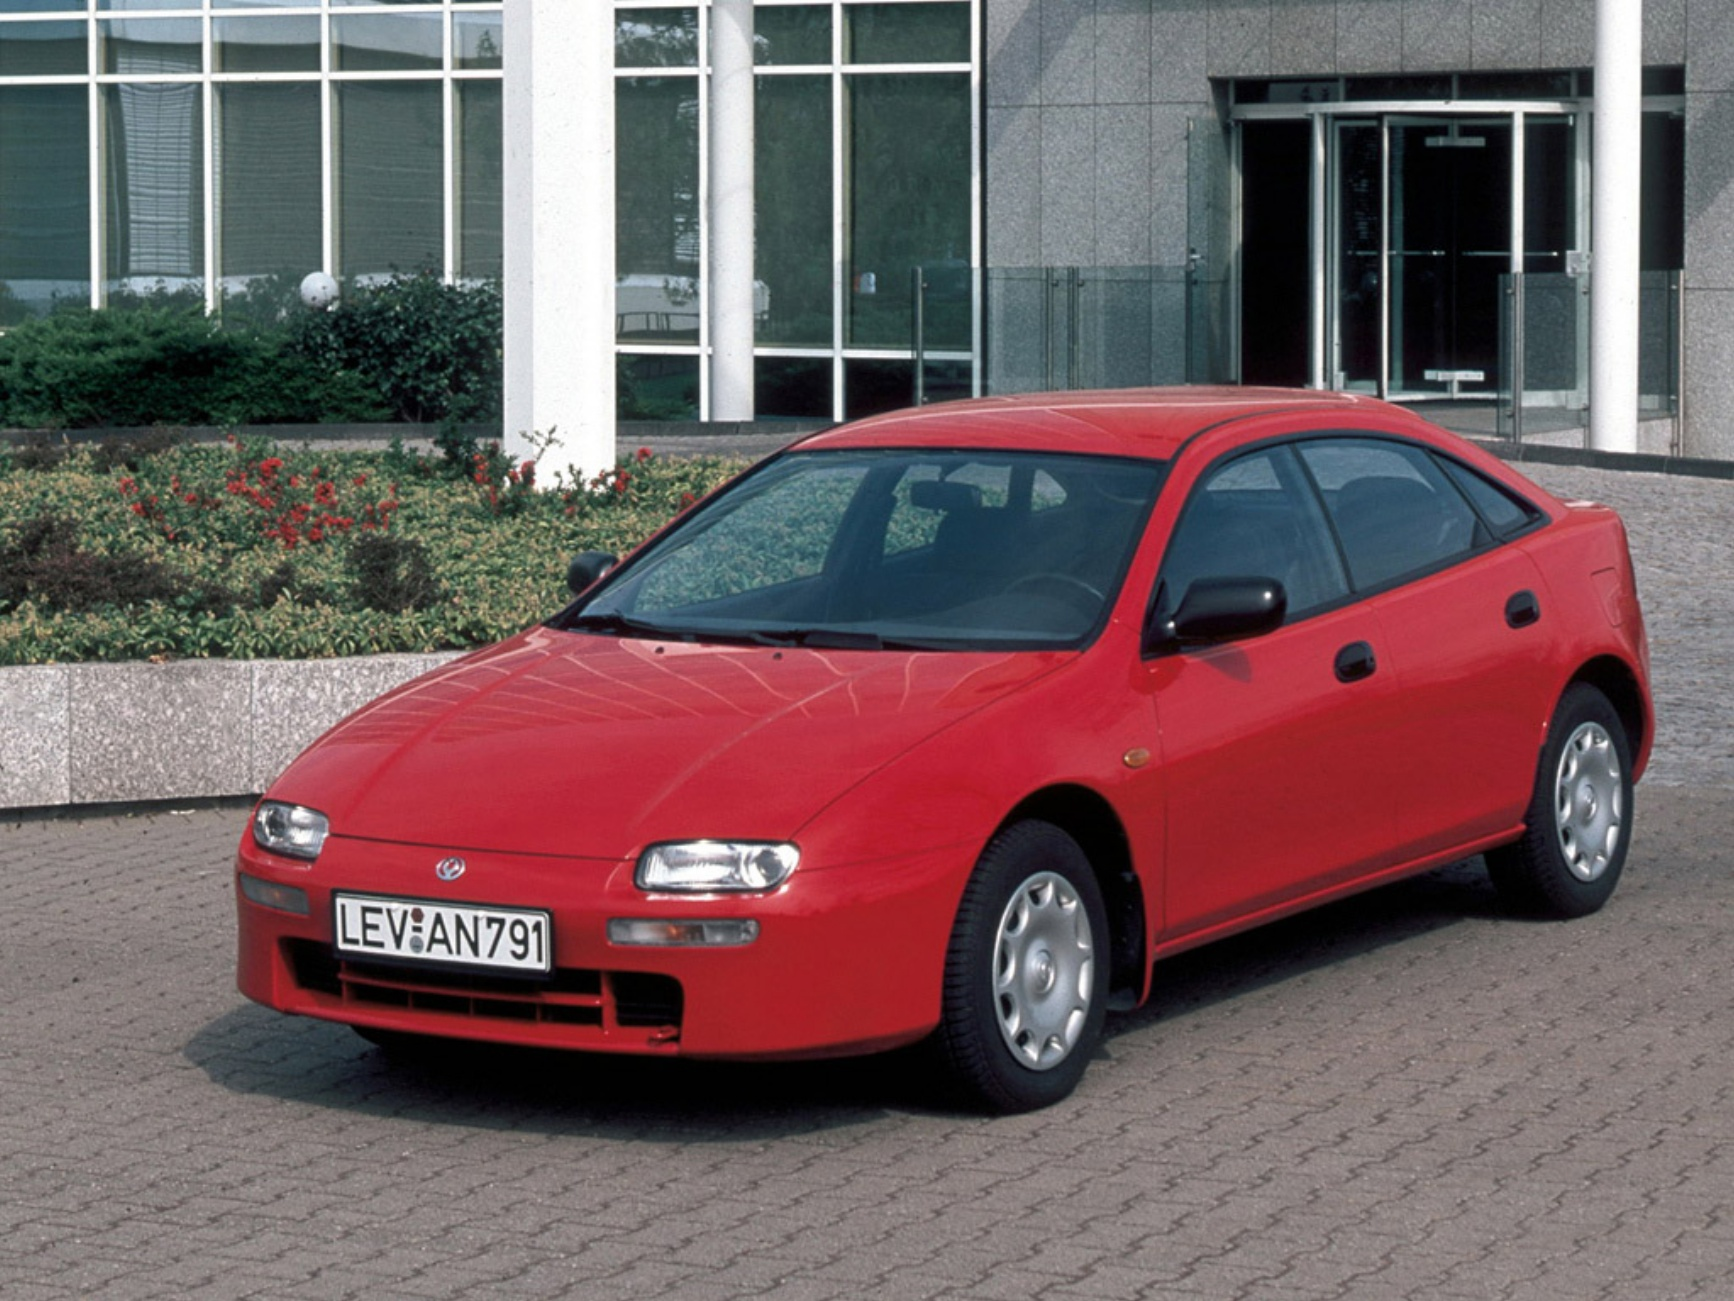 3dtuning of mazda 323f 5 door hatchback 1994 3dtuning - unique